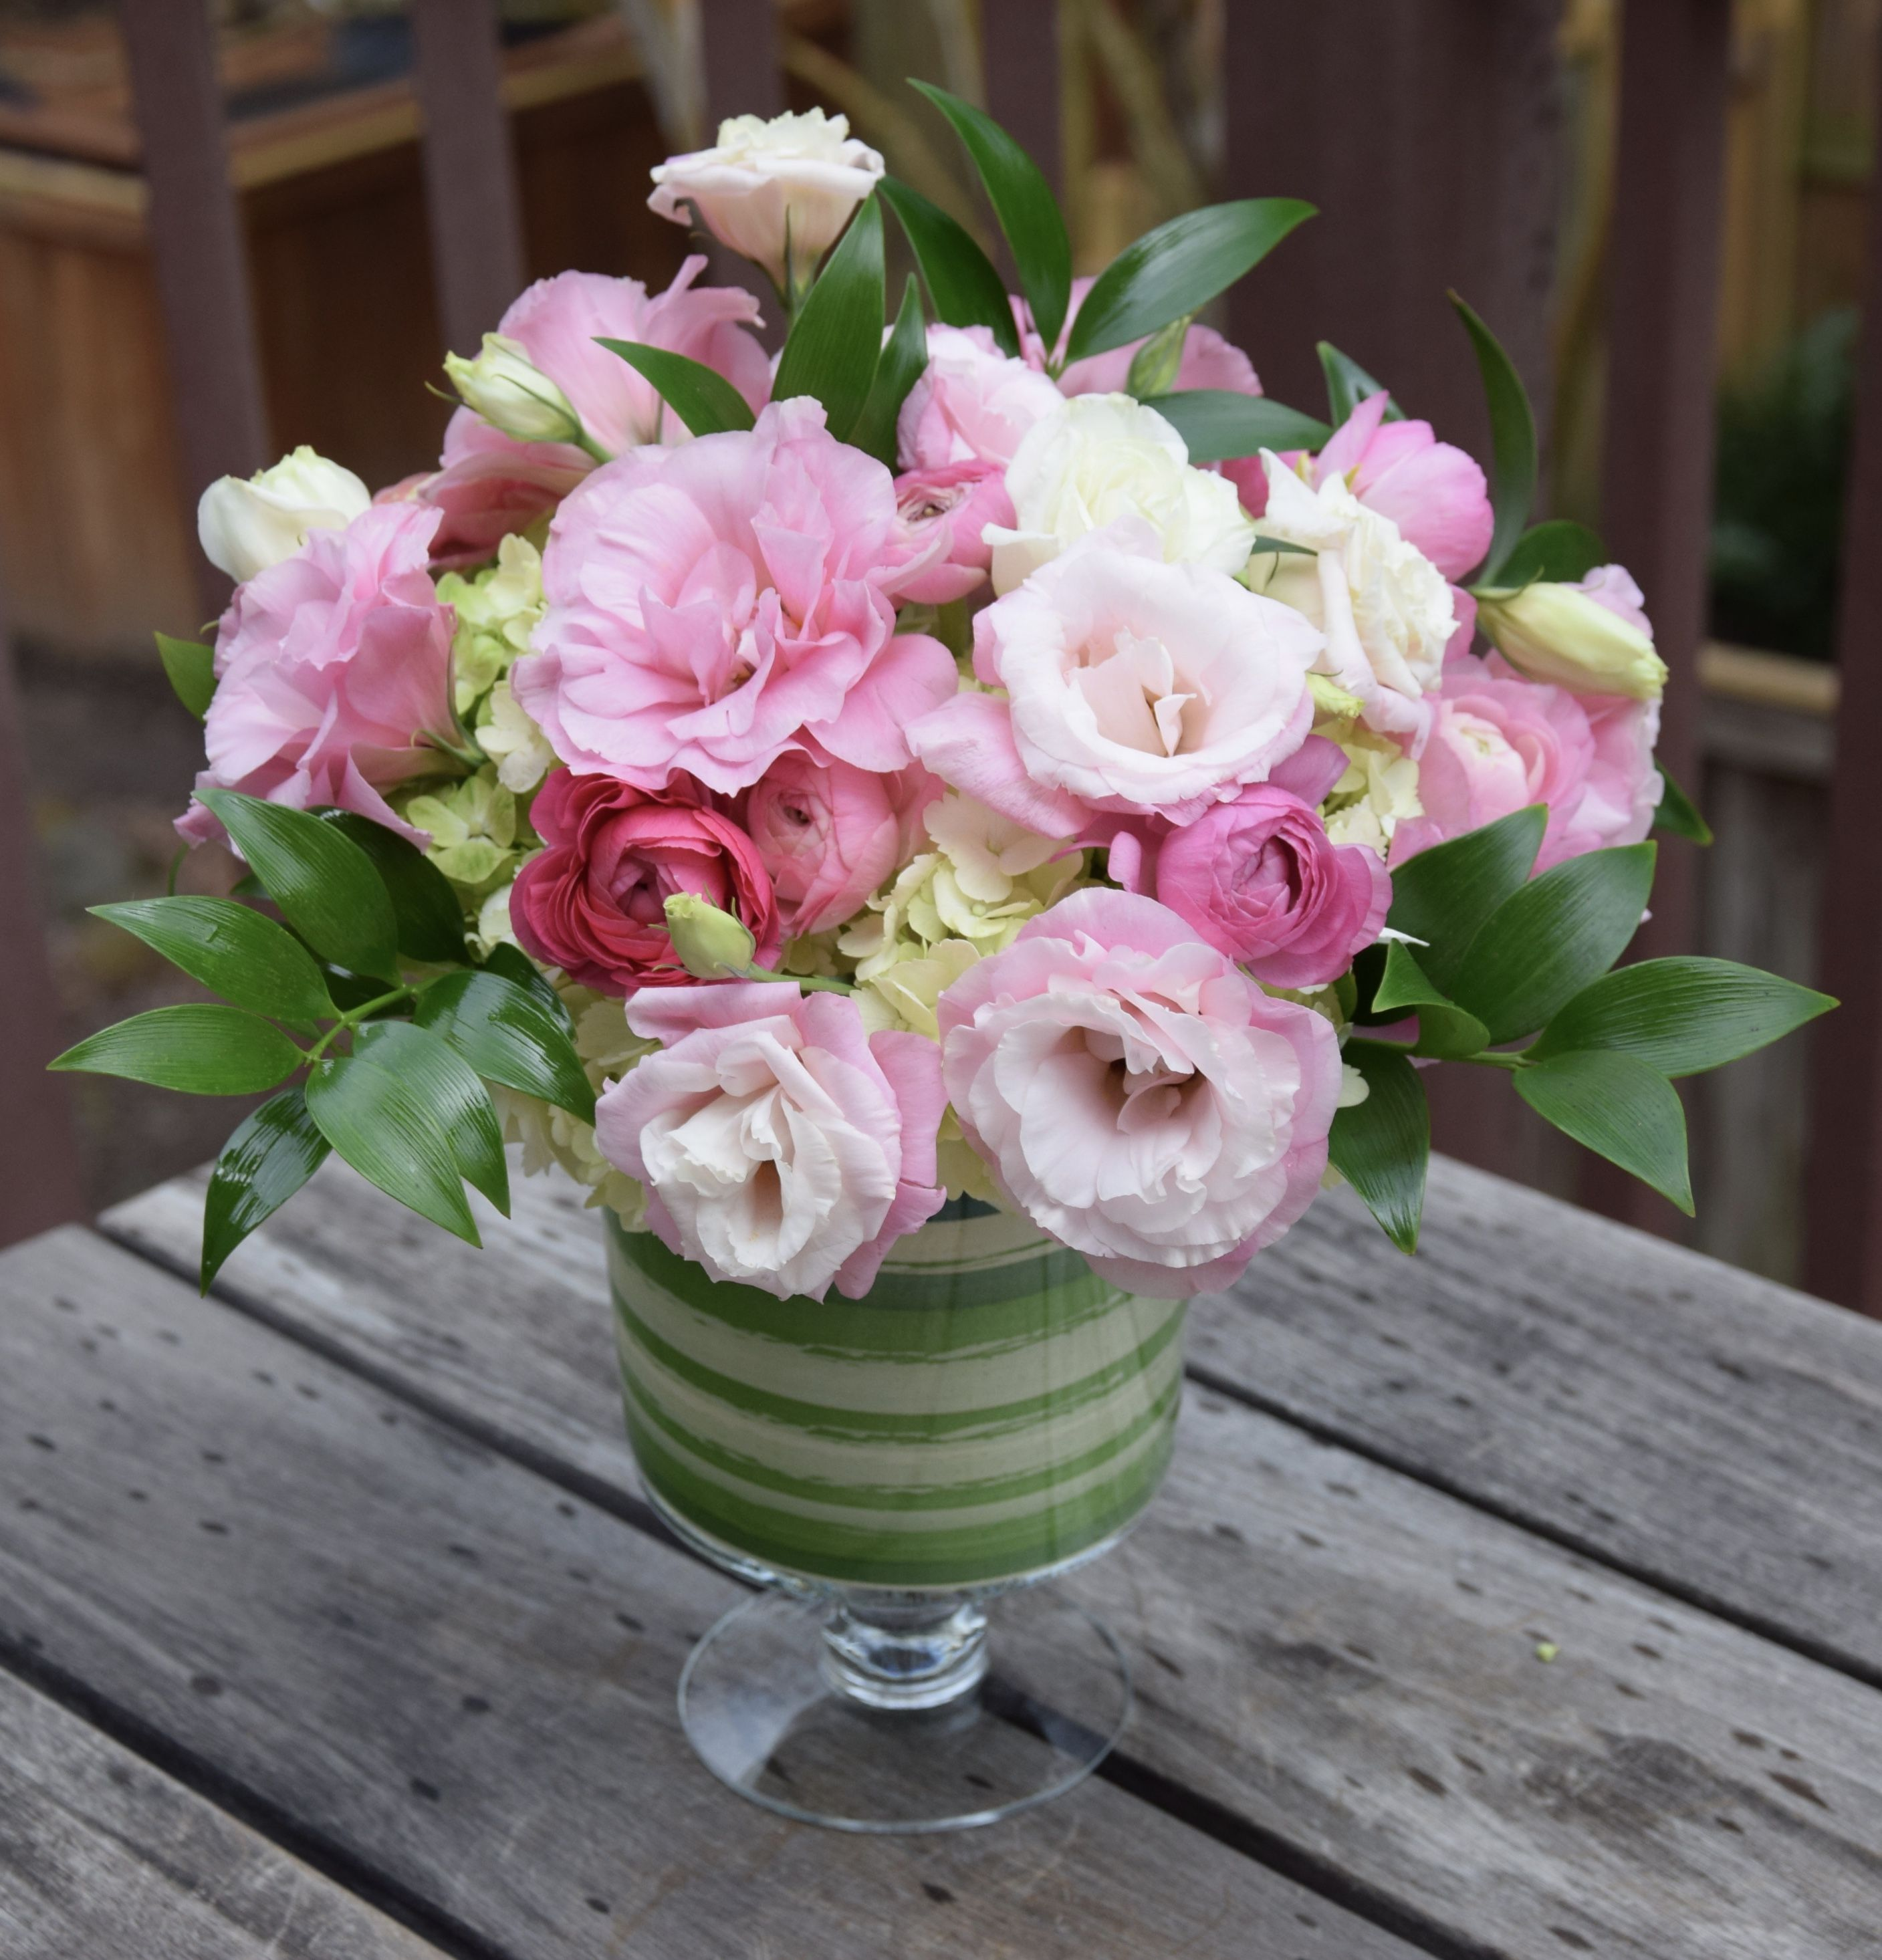 Birthday Flower Bouquet With Pink Lisianthus And Ranunculus And Light Green Hydrangeas Birthday Flowers Bouquet Flower Arrangements Fresh Flowers Arrangements